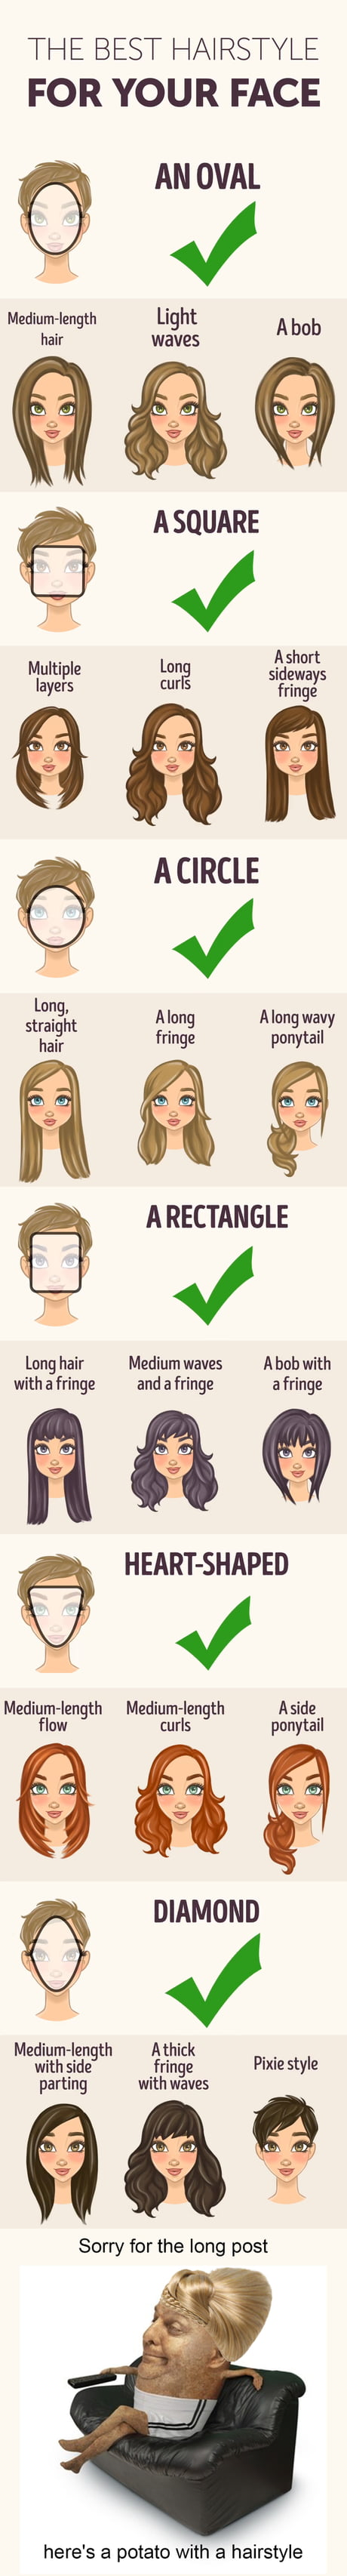 The best hairstyle for your face shape